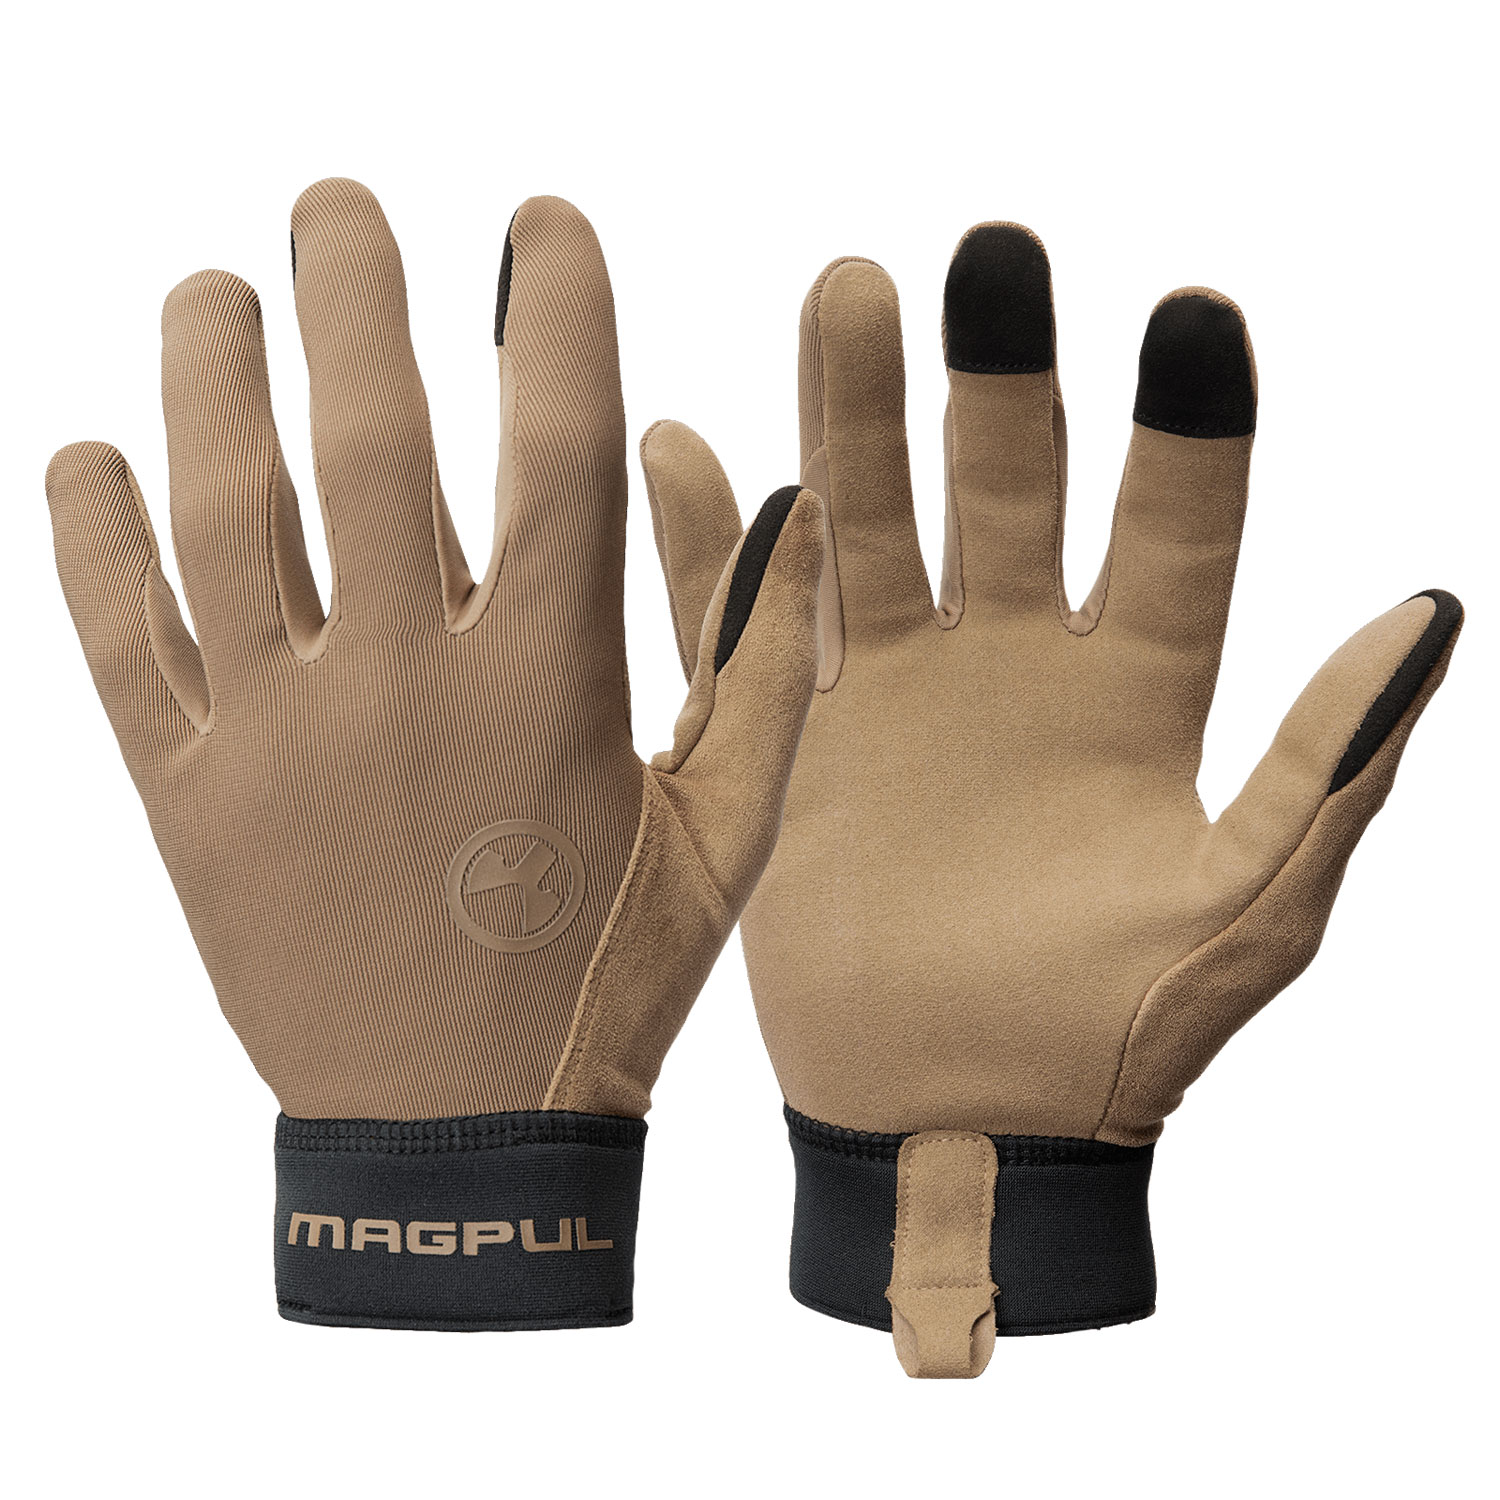 Magpul MAG1014-251 Technical Glove 2.0 XL Coyote